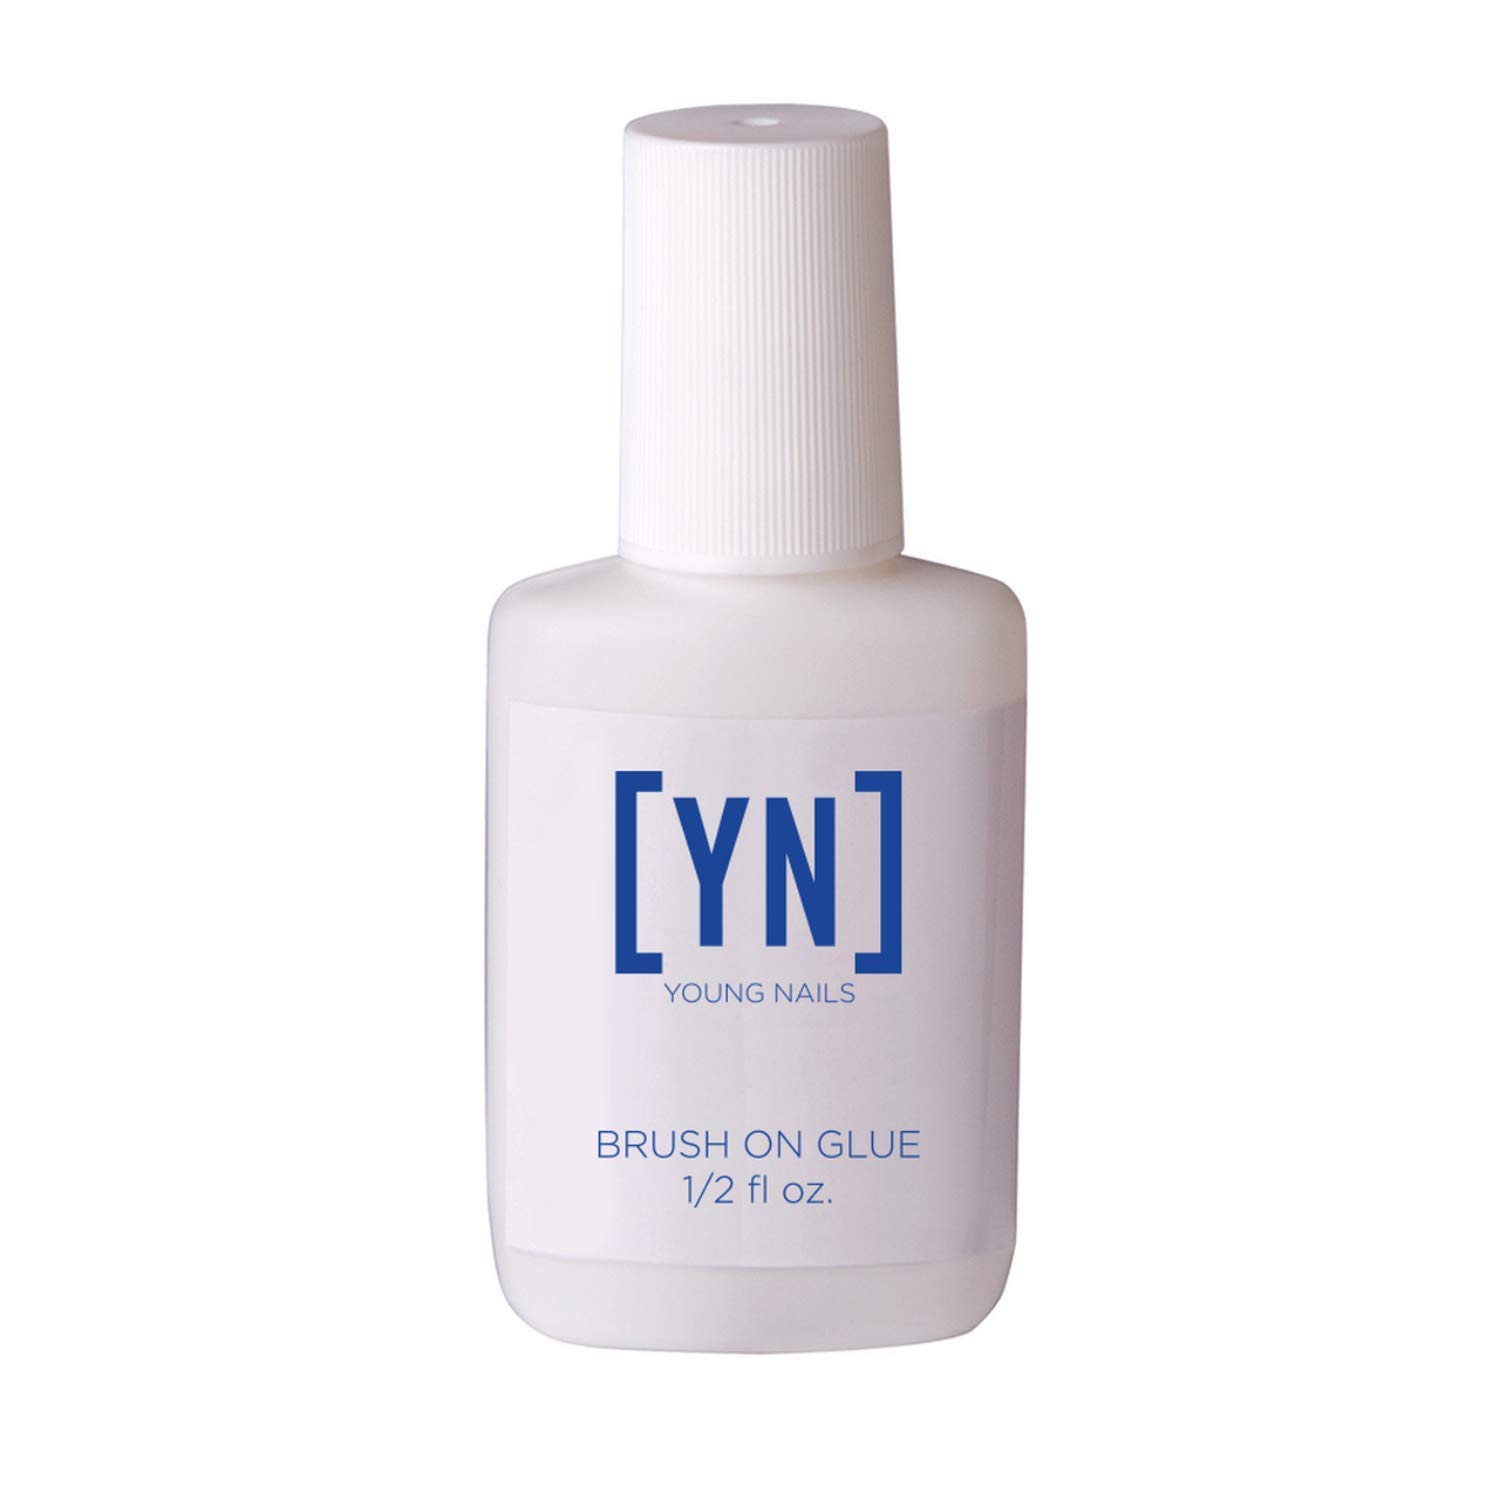 YOUNG NAILS Brush-on-Glue, 0.50 fl. oz. by Young Nails